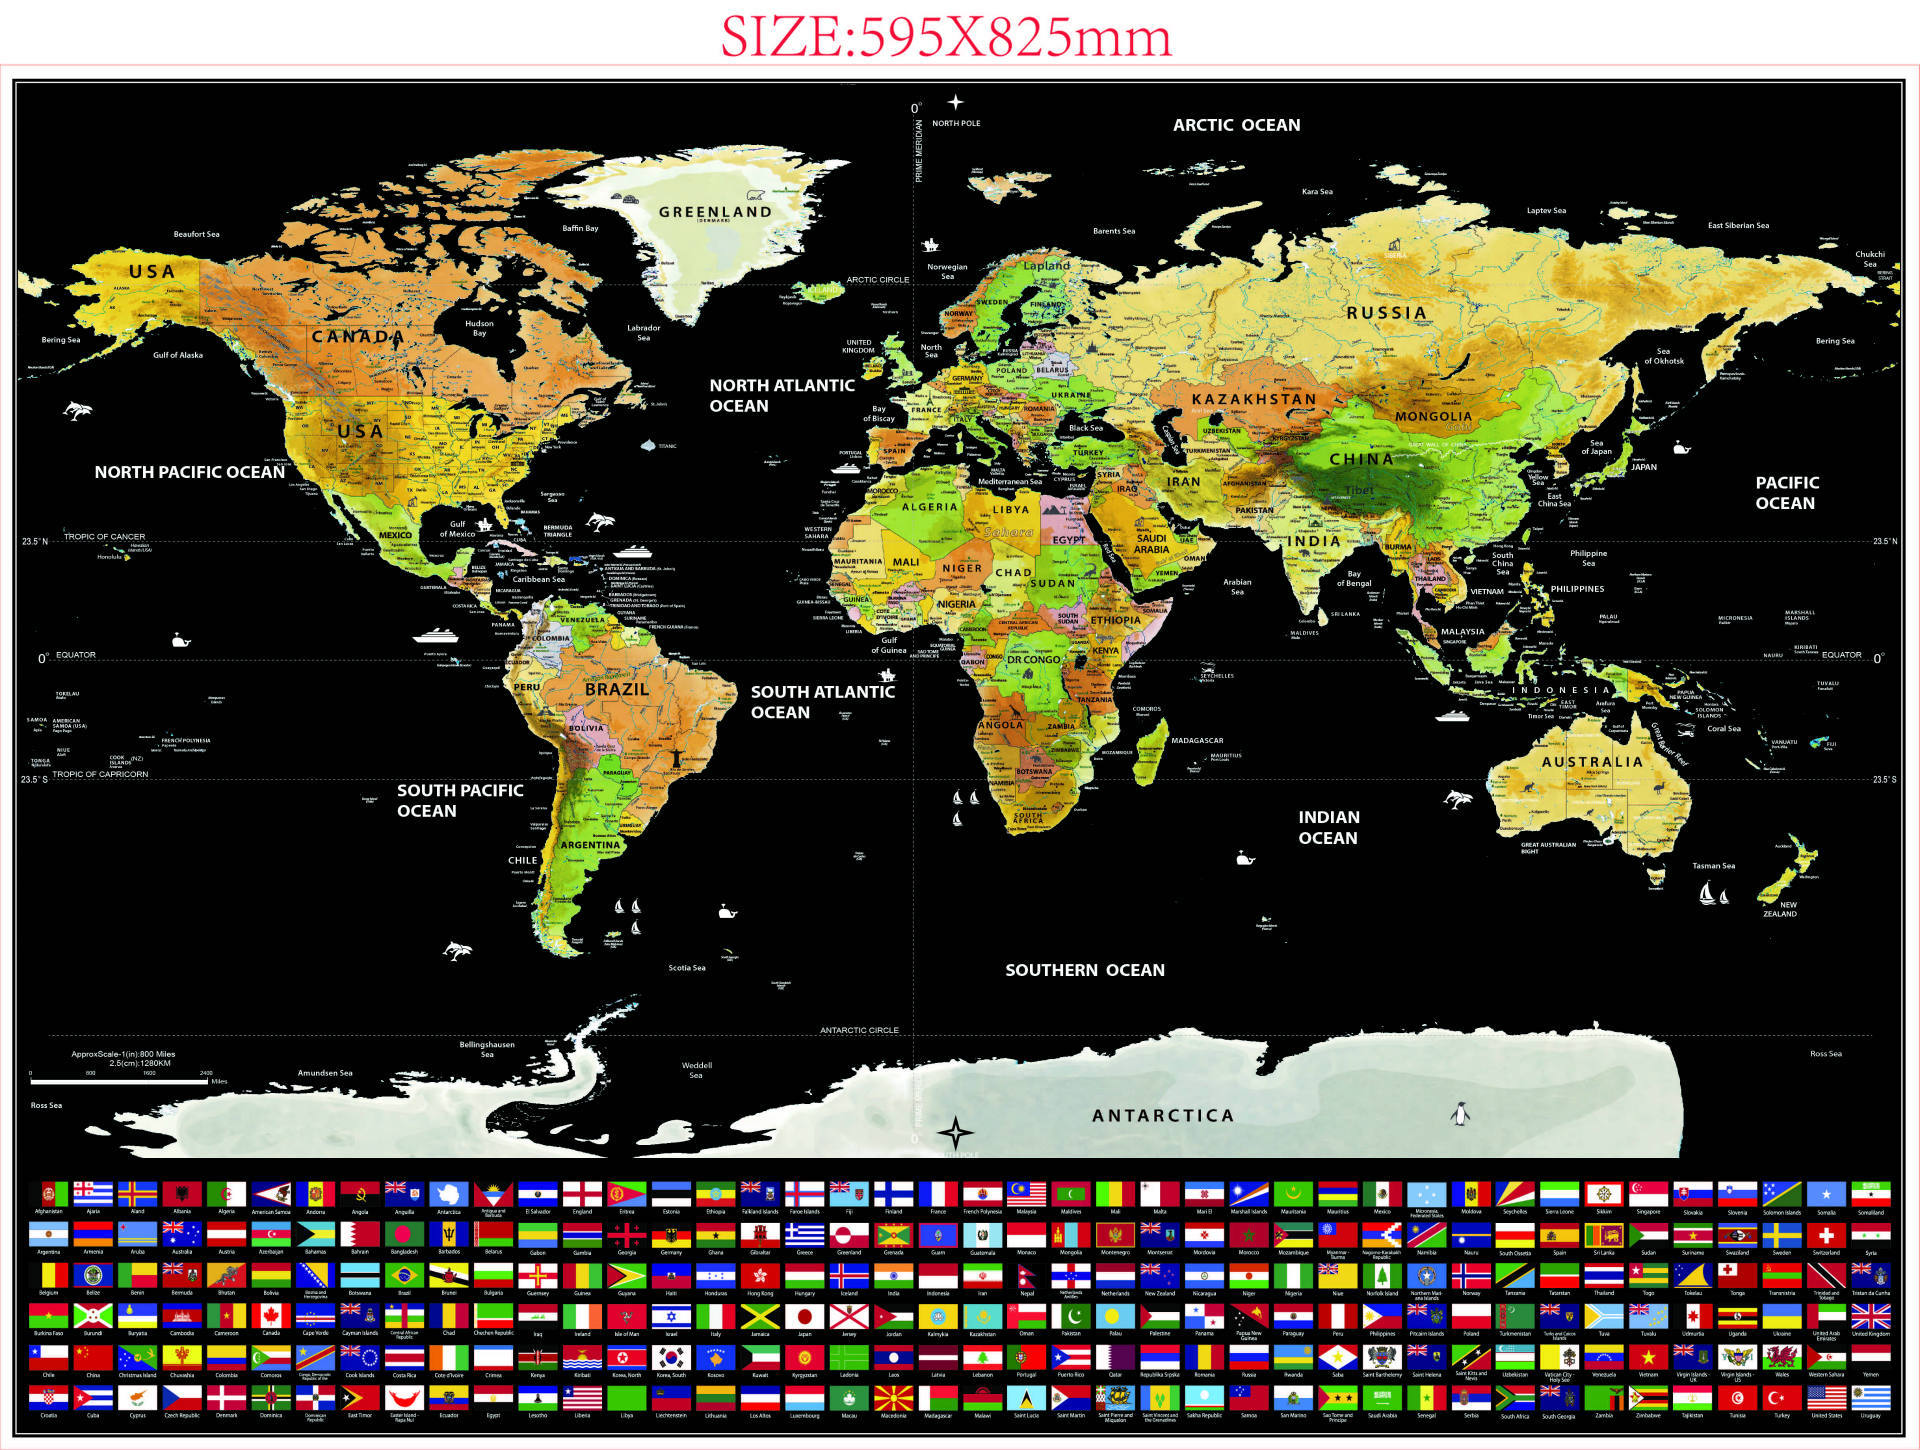 Travel world flag scratch map gold foil black scratch map wipe foil travel world flag scratch map gold foil black scratch map wipe foil coating world flag map luxury travel gift in wall stickers from home garden on gumiabroncs Gallery